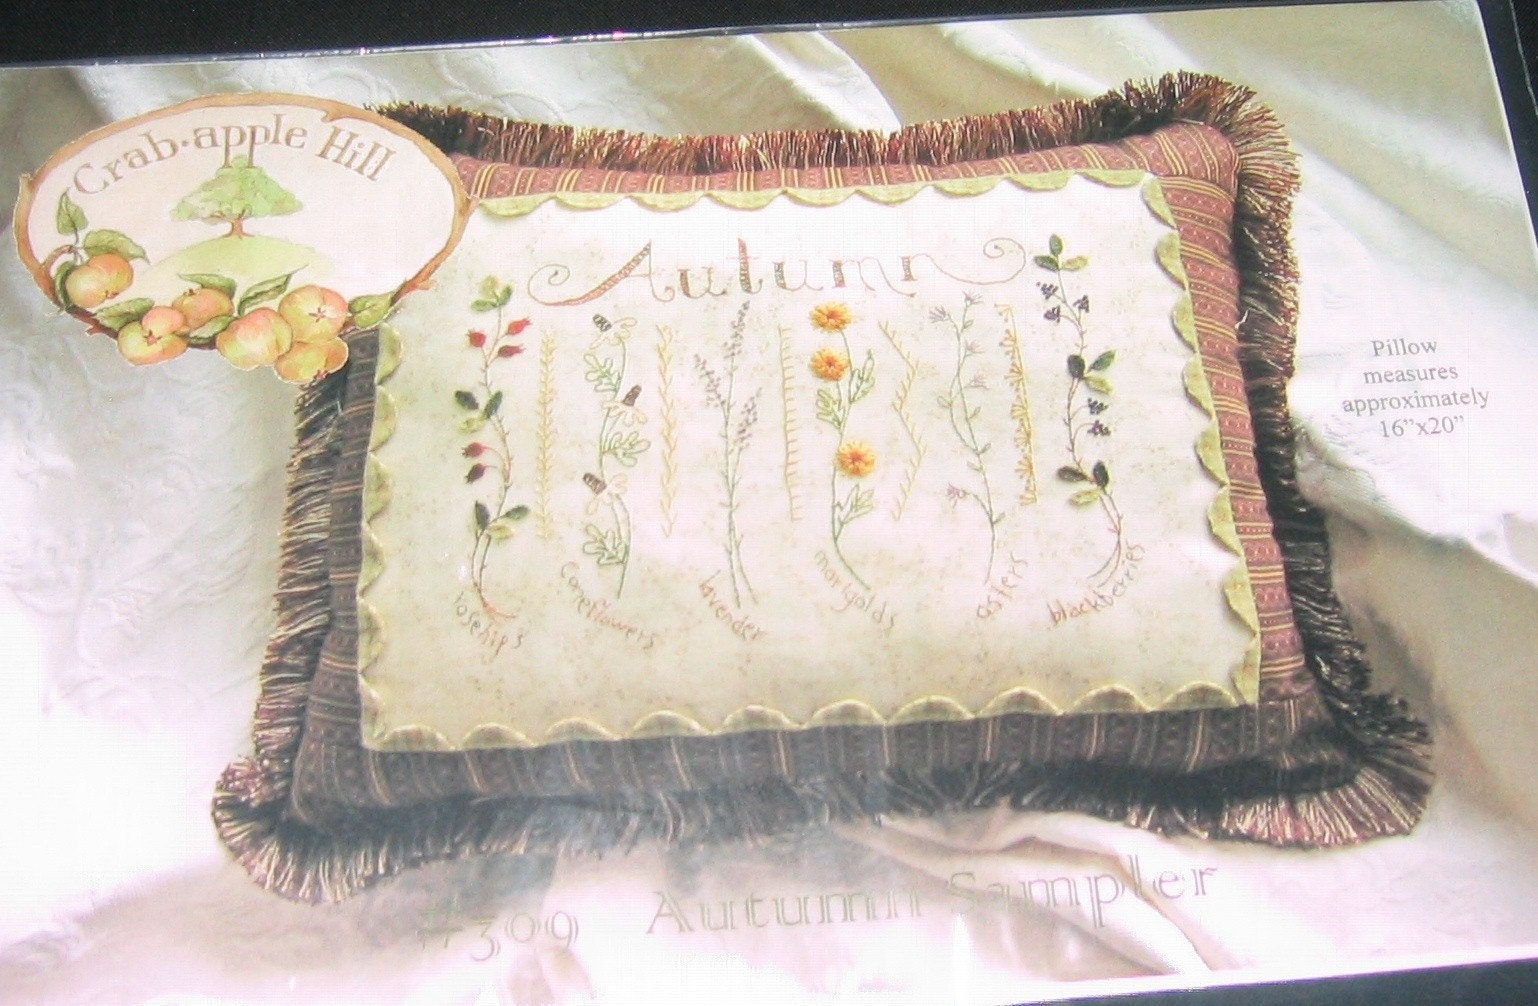 Autumn sampler hand embroidery pillow pattern by crab apple